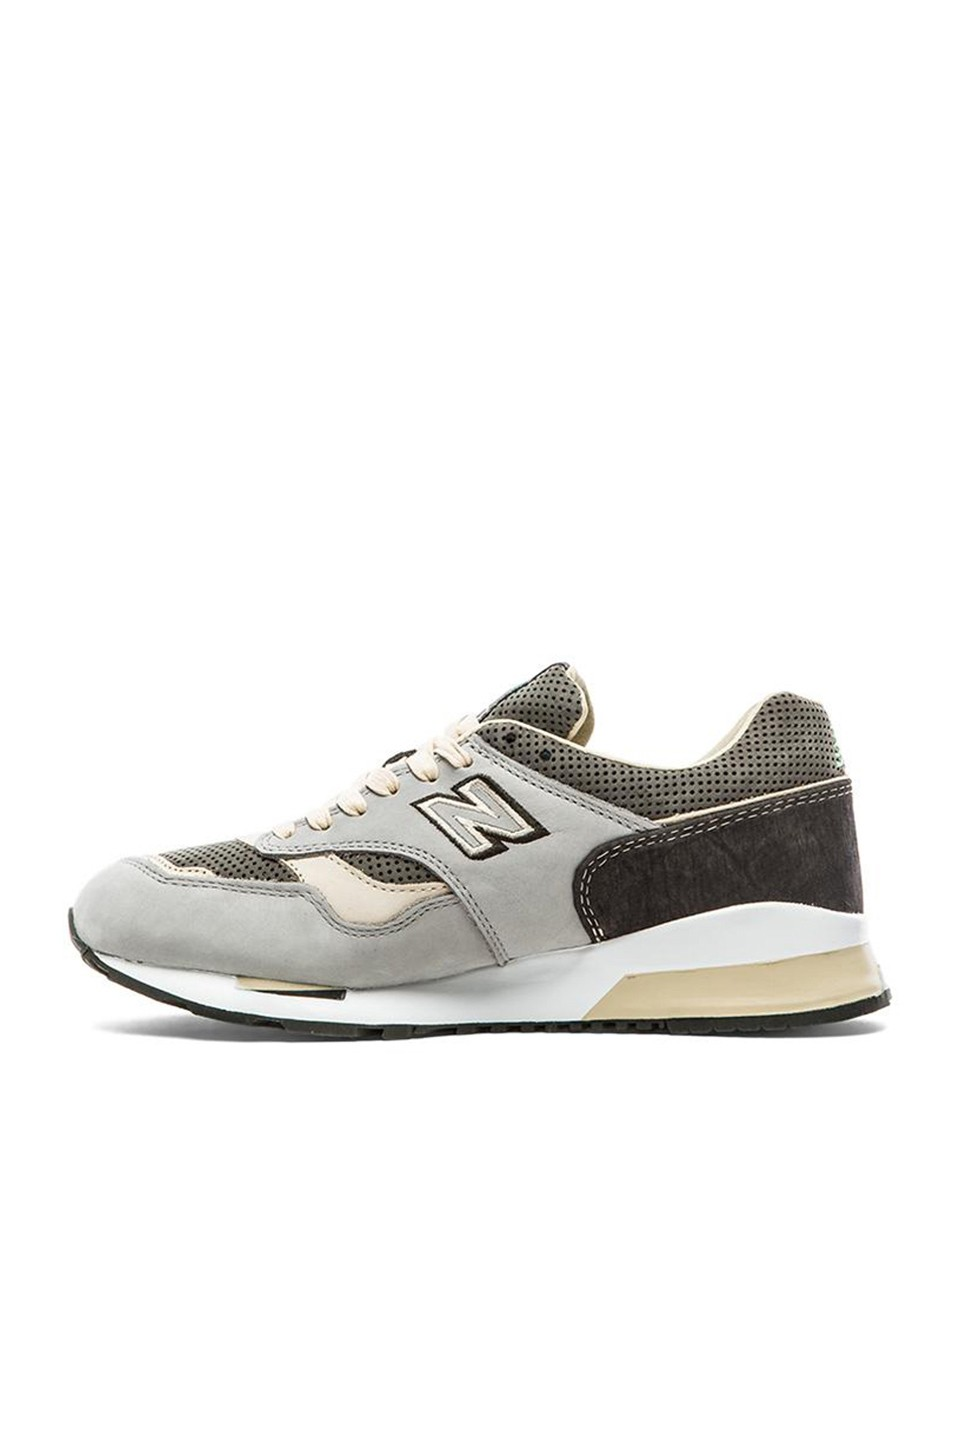 Femme New Balance CM1500 Made In USA Chaussures De Sport Vert Gris Beige